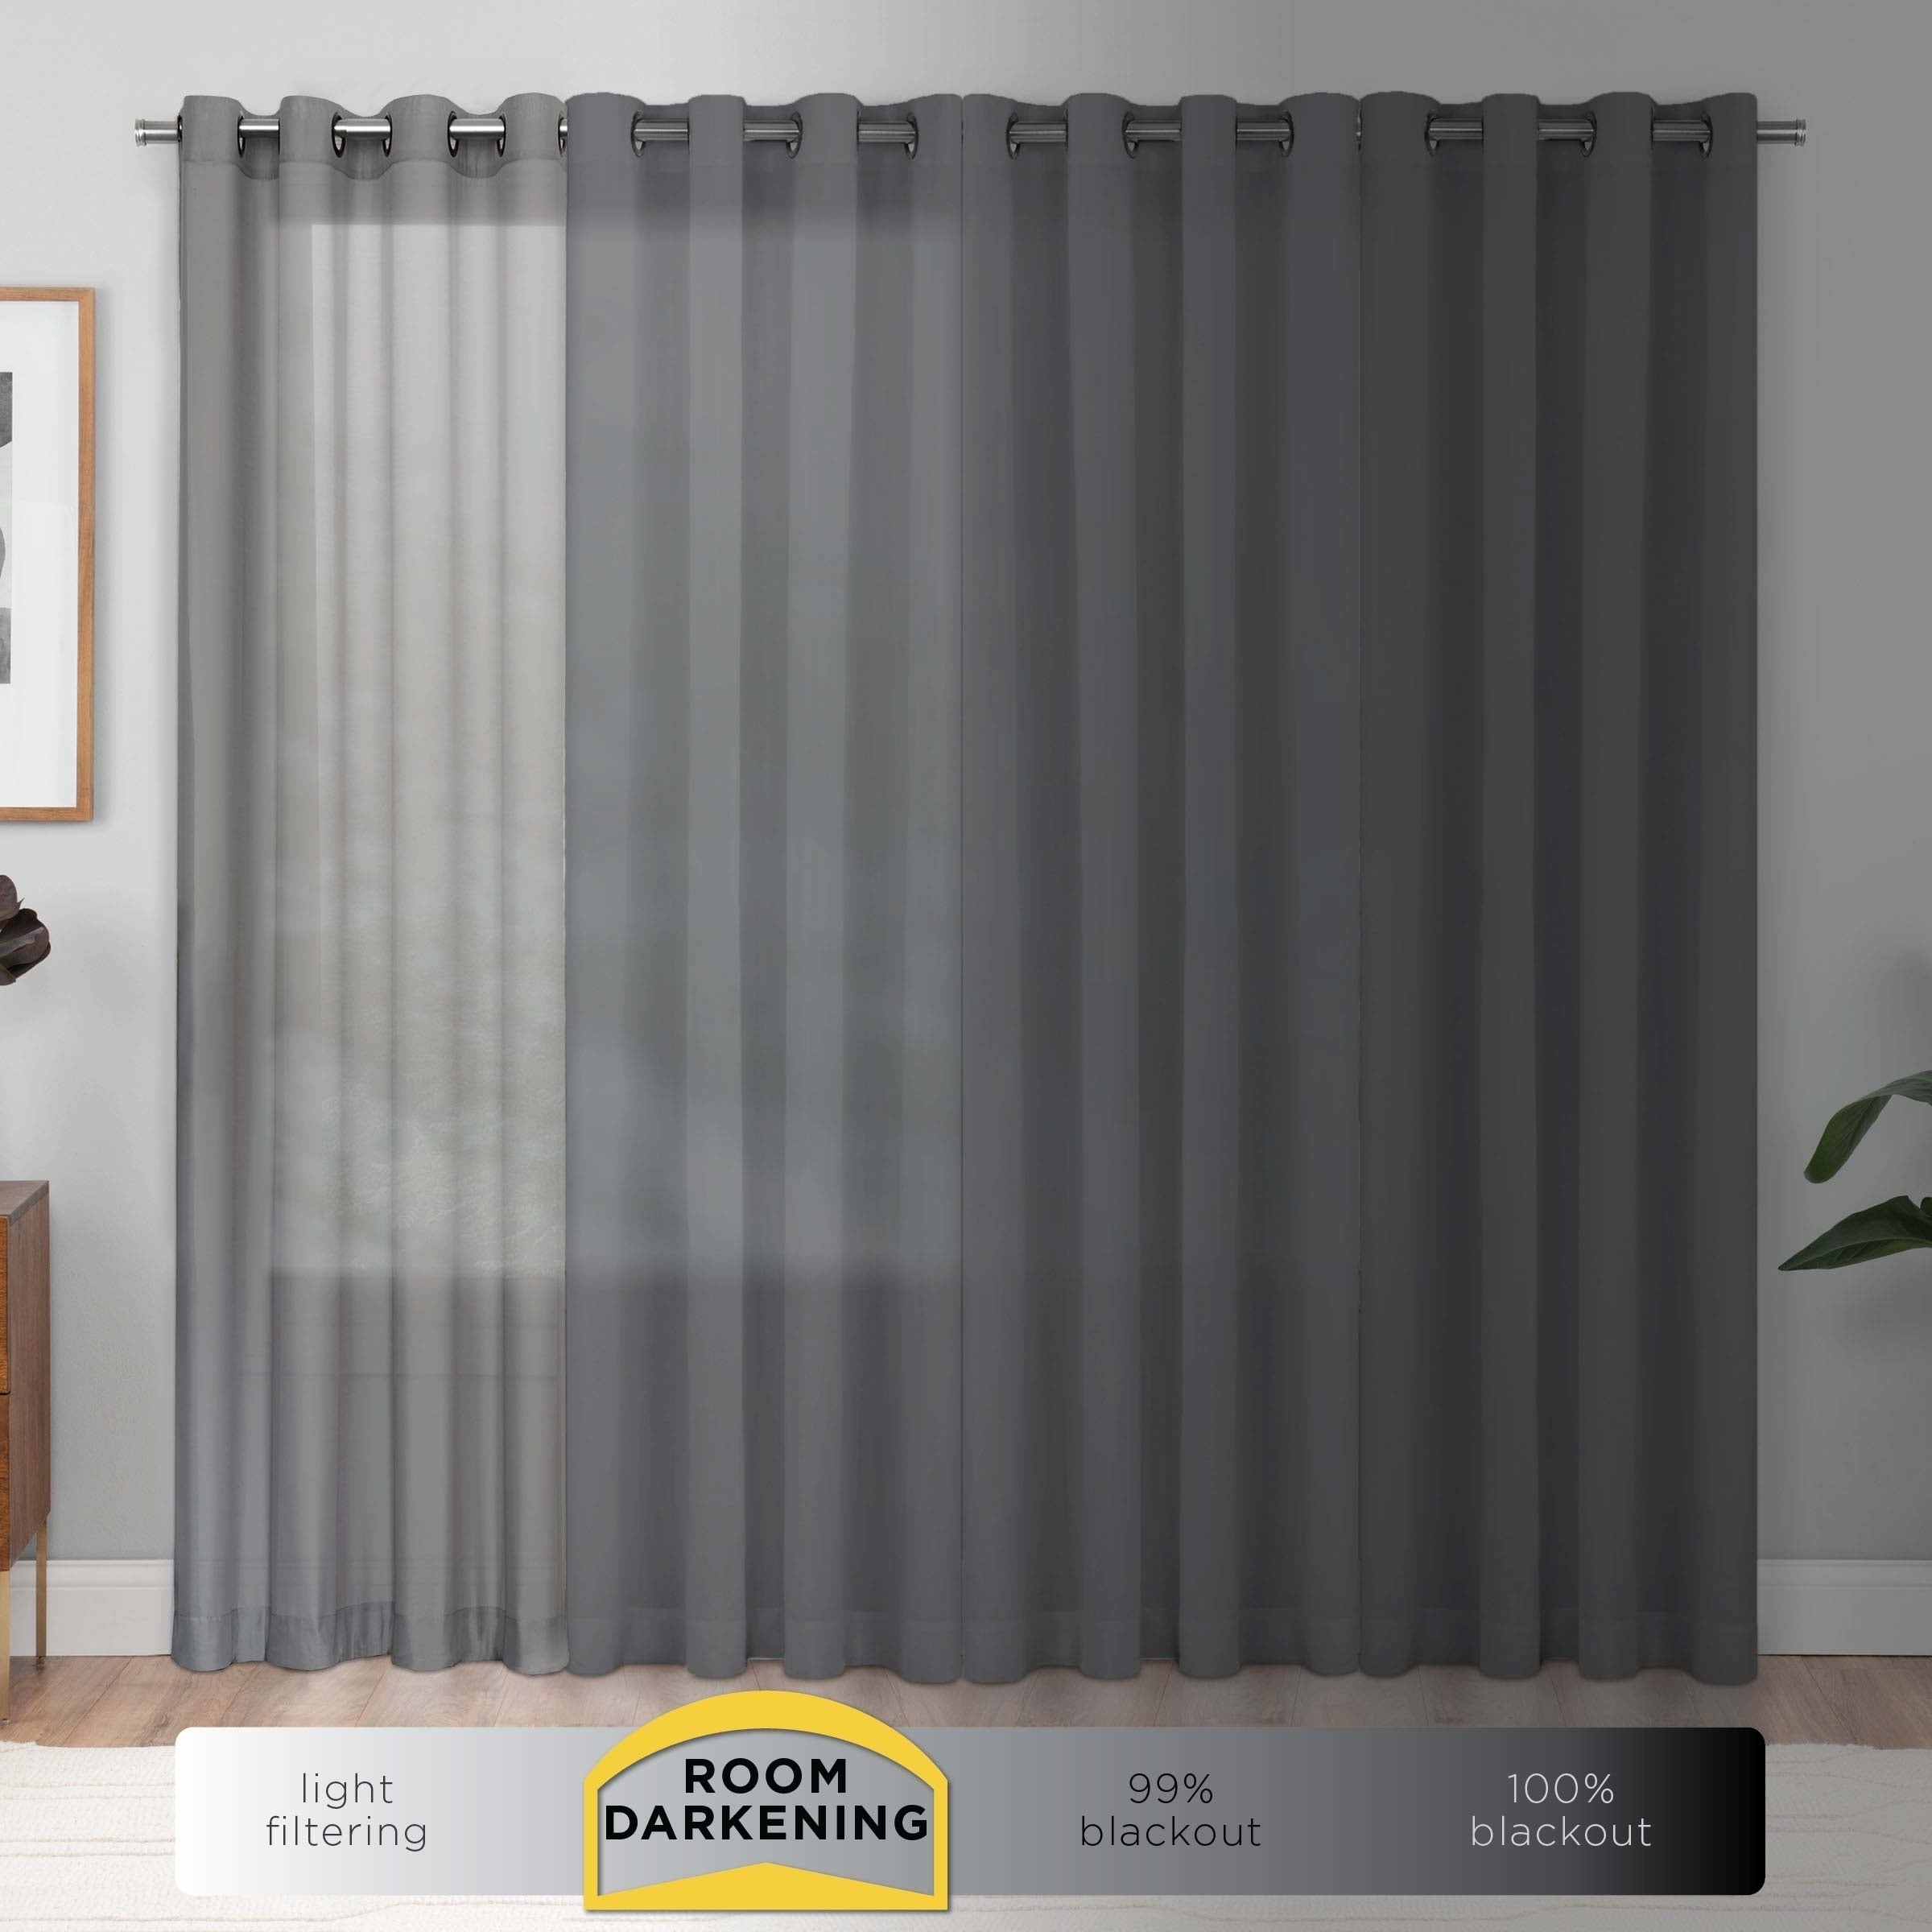 Eclipse Room Darkening Thermal Curtains Are Designed To Block Out Light And Reduce Unwanted Noise So You Can Get A Better Night S Sleep The